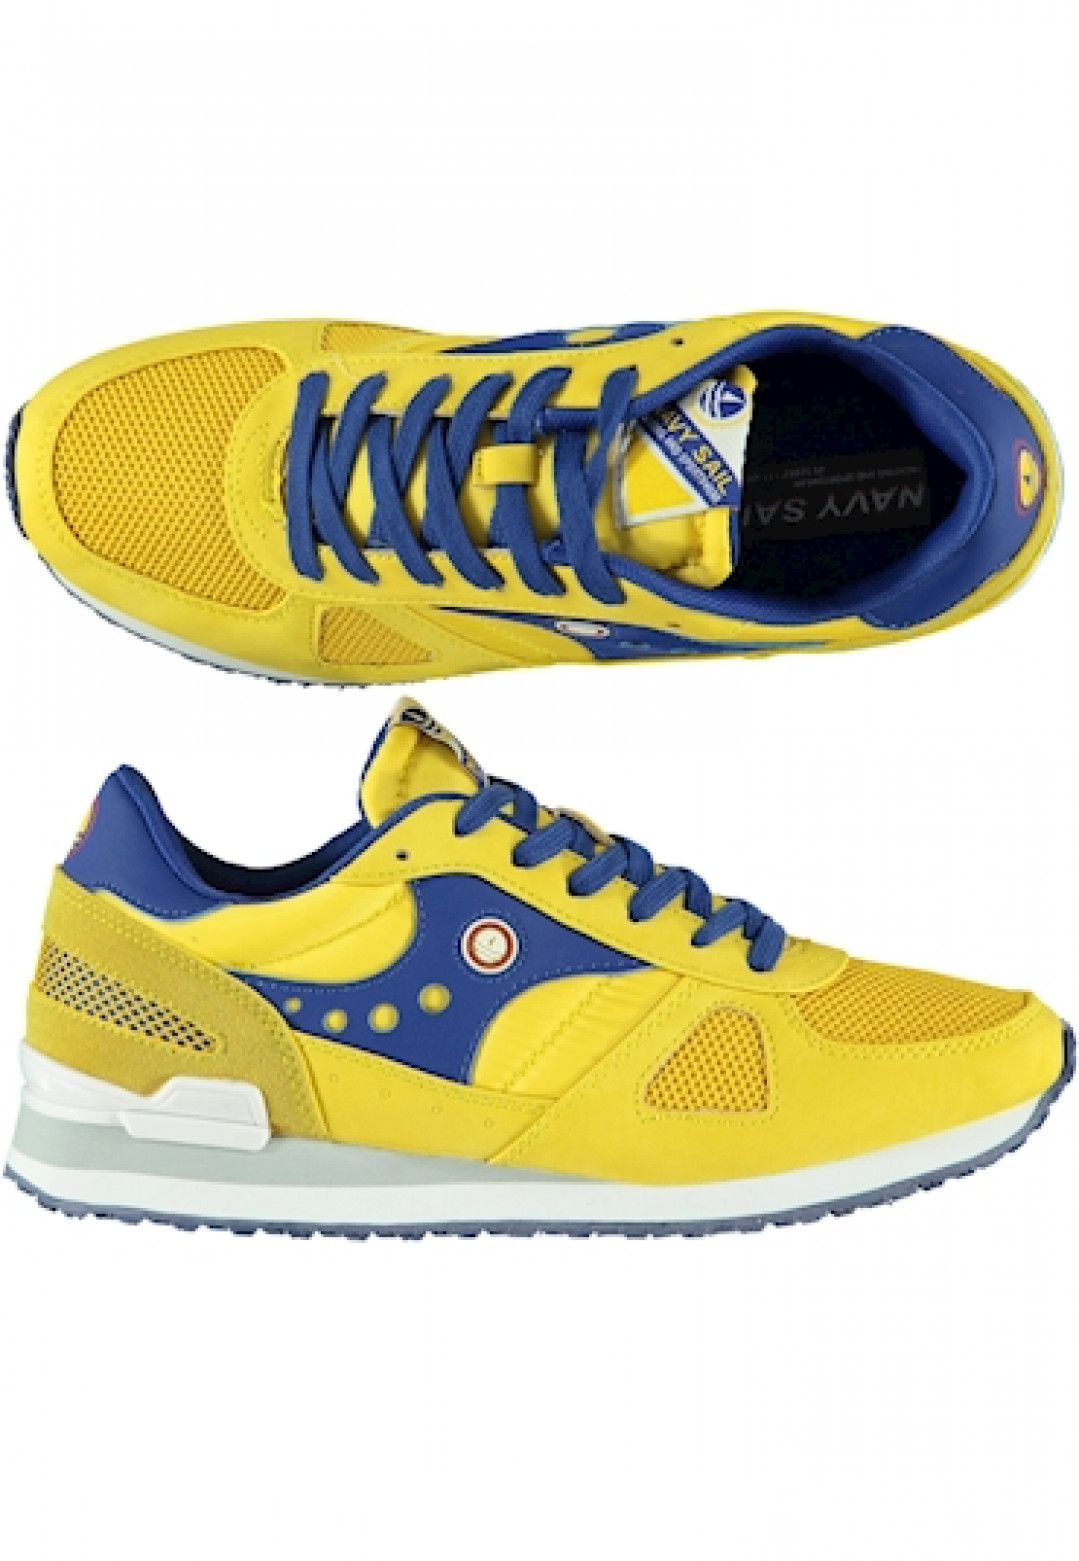 Navy Sail Sneakers Nsw913003